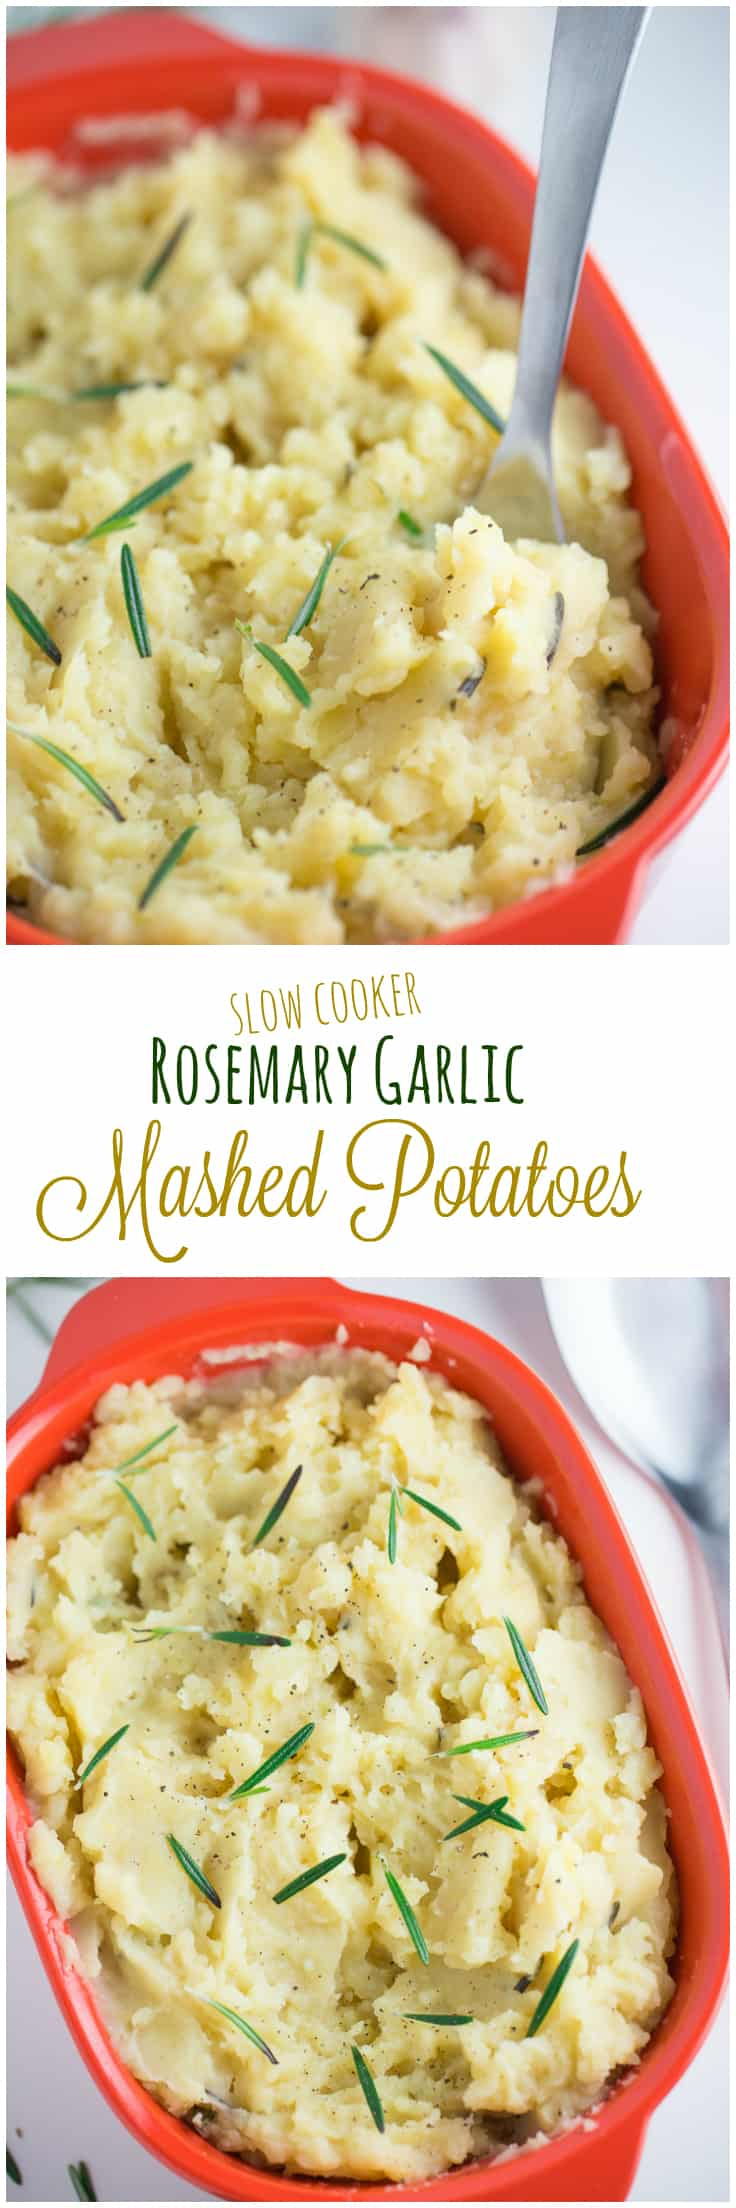 Slow Cooker Rosemary Garlic Mashed Potatoes - The best way to make mashed potatoes! These Slow Cooker Rosemary Garlic Mashed Potatoes are made with fresh rosemary, garlic cloves and ready in 3 hours.